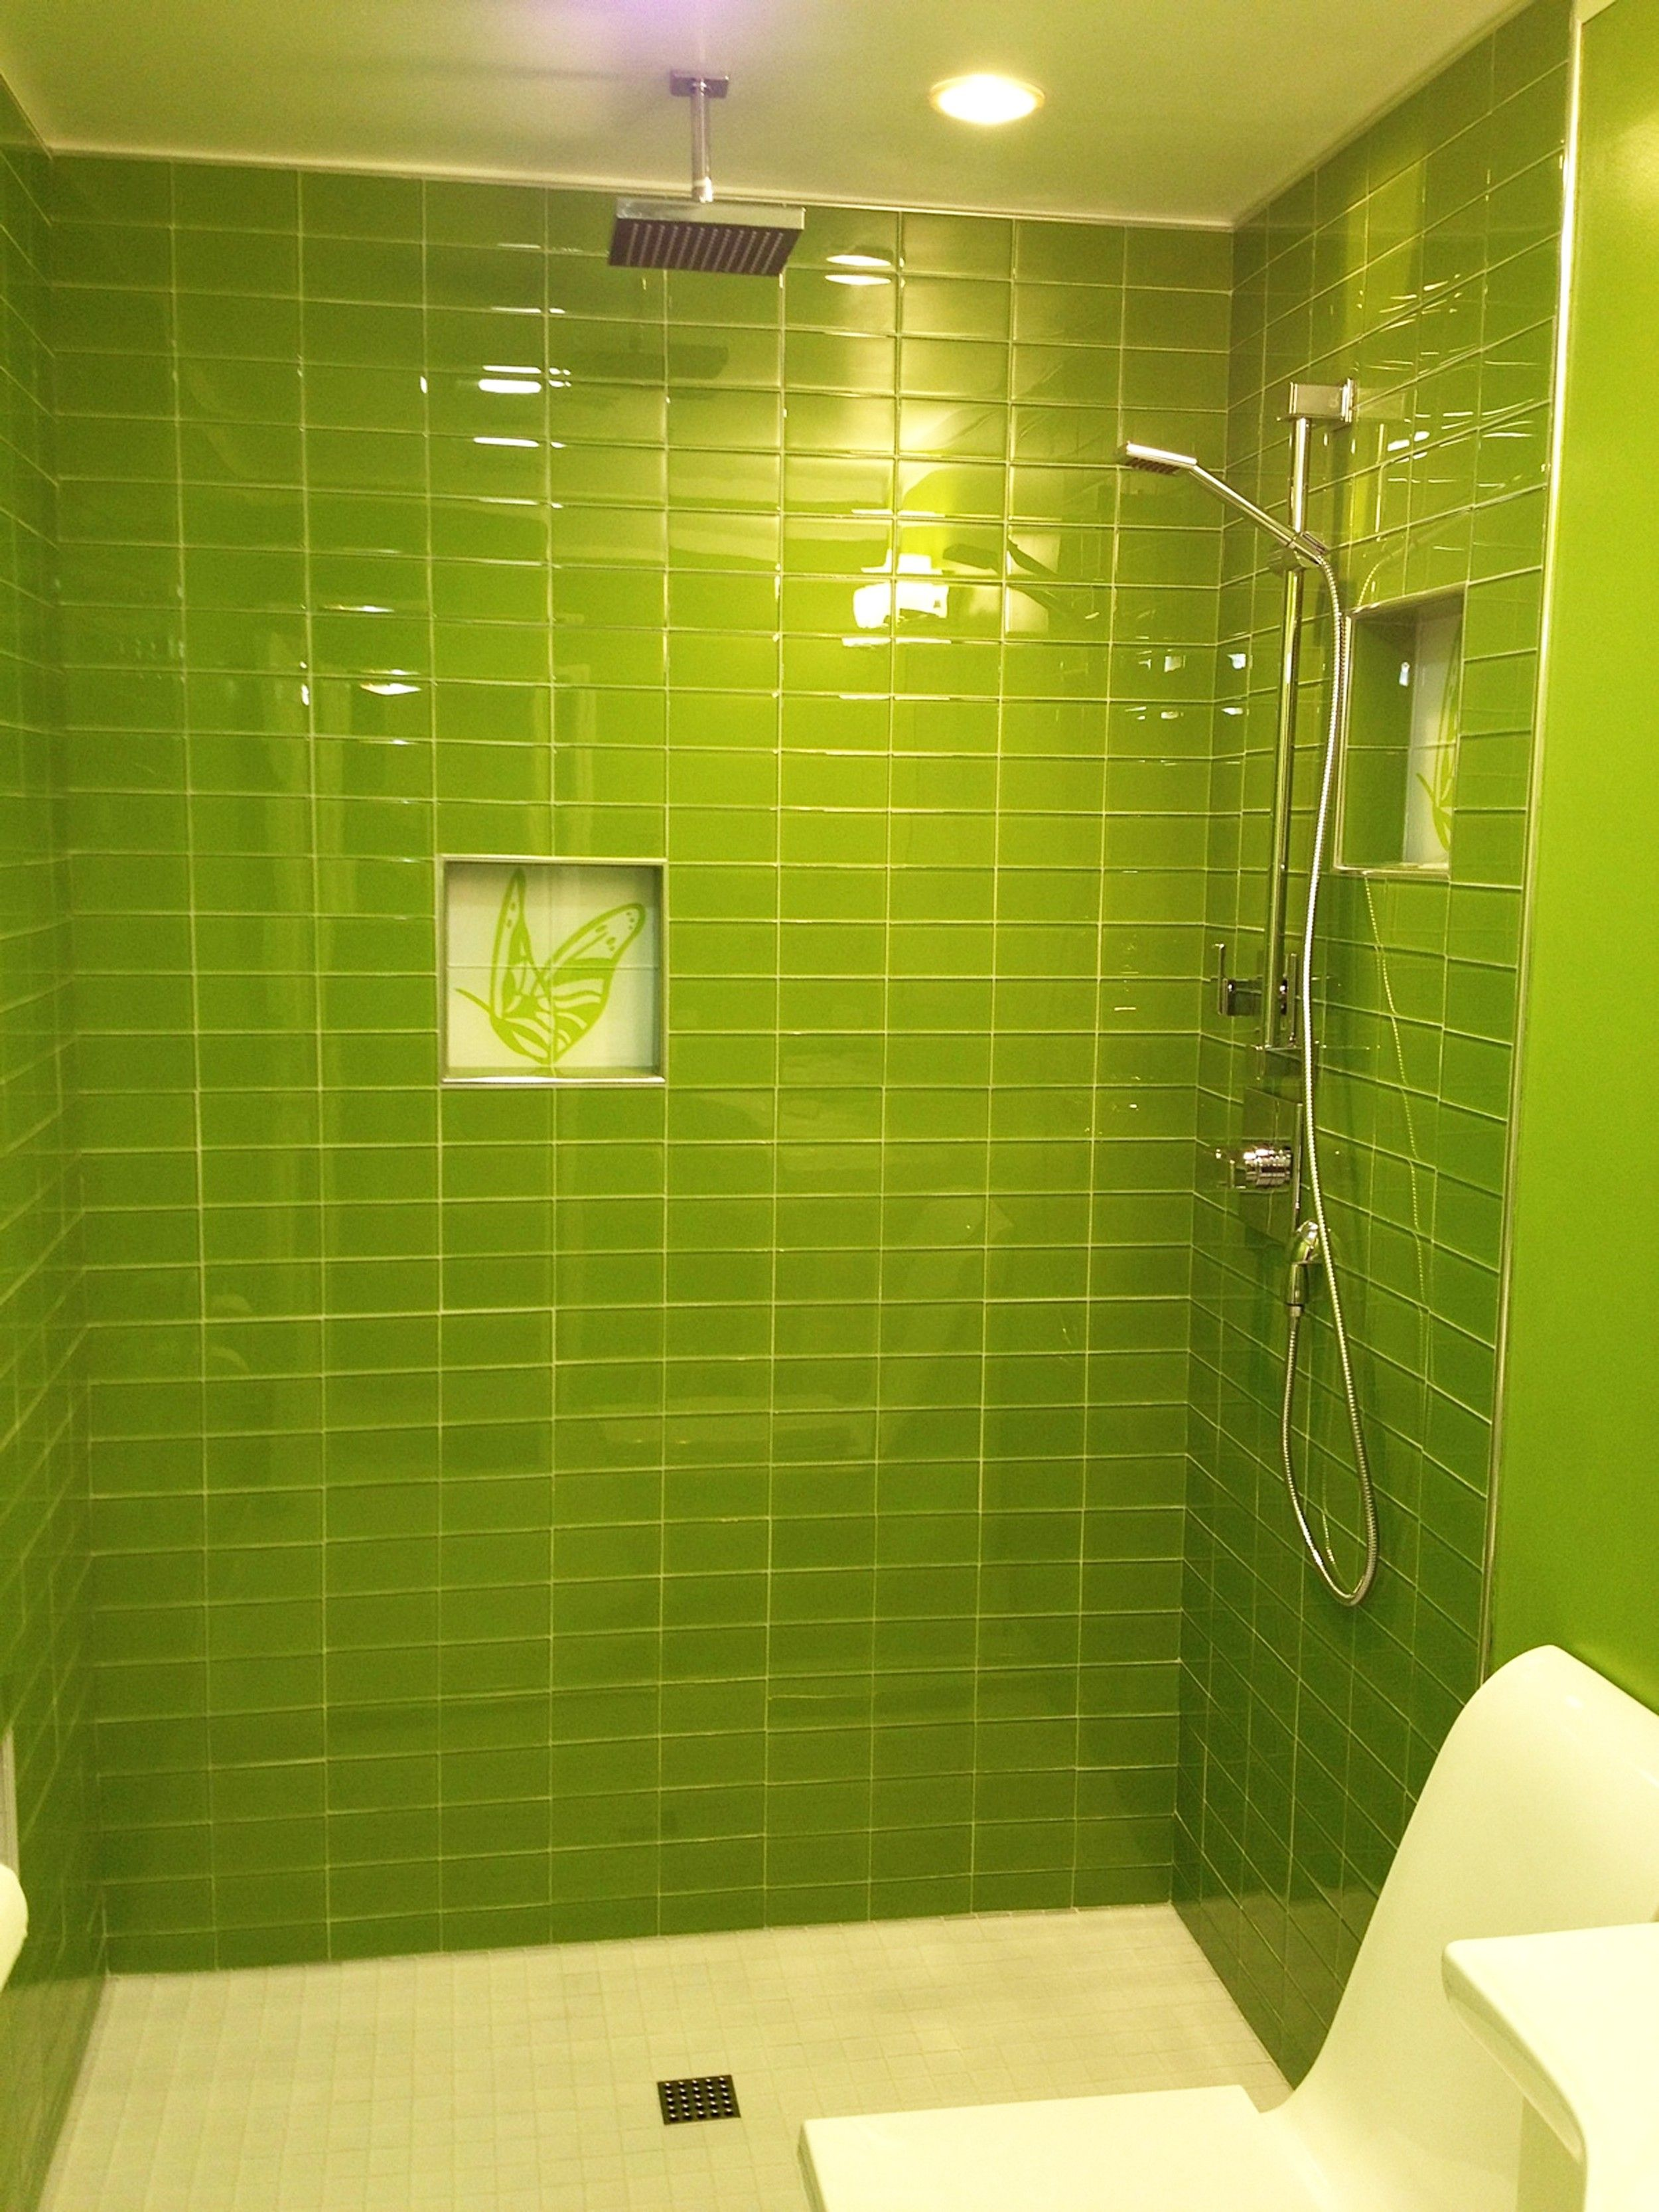 Lush Glass Subway Tile Lemongrass 3x6 Home Spacethrooms